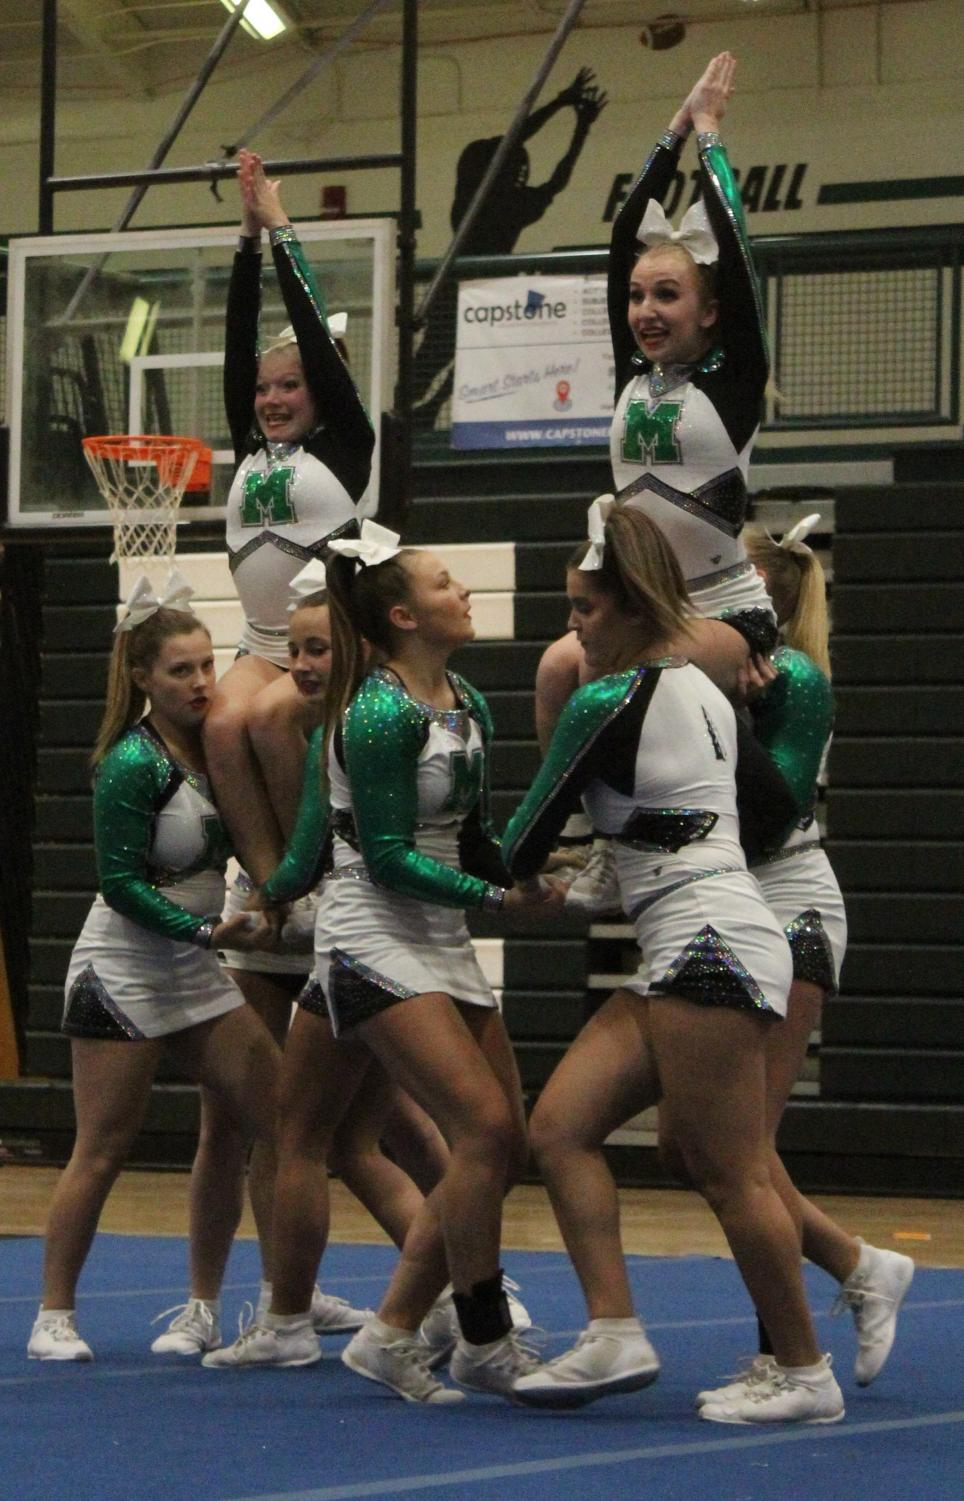 Cheerleaders Come Out on Top in 1st Competition of the Season